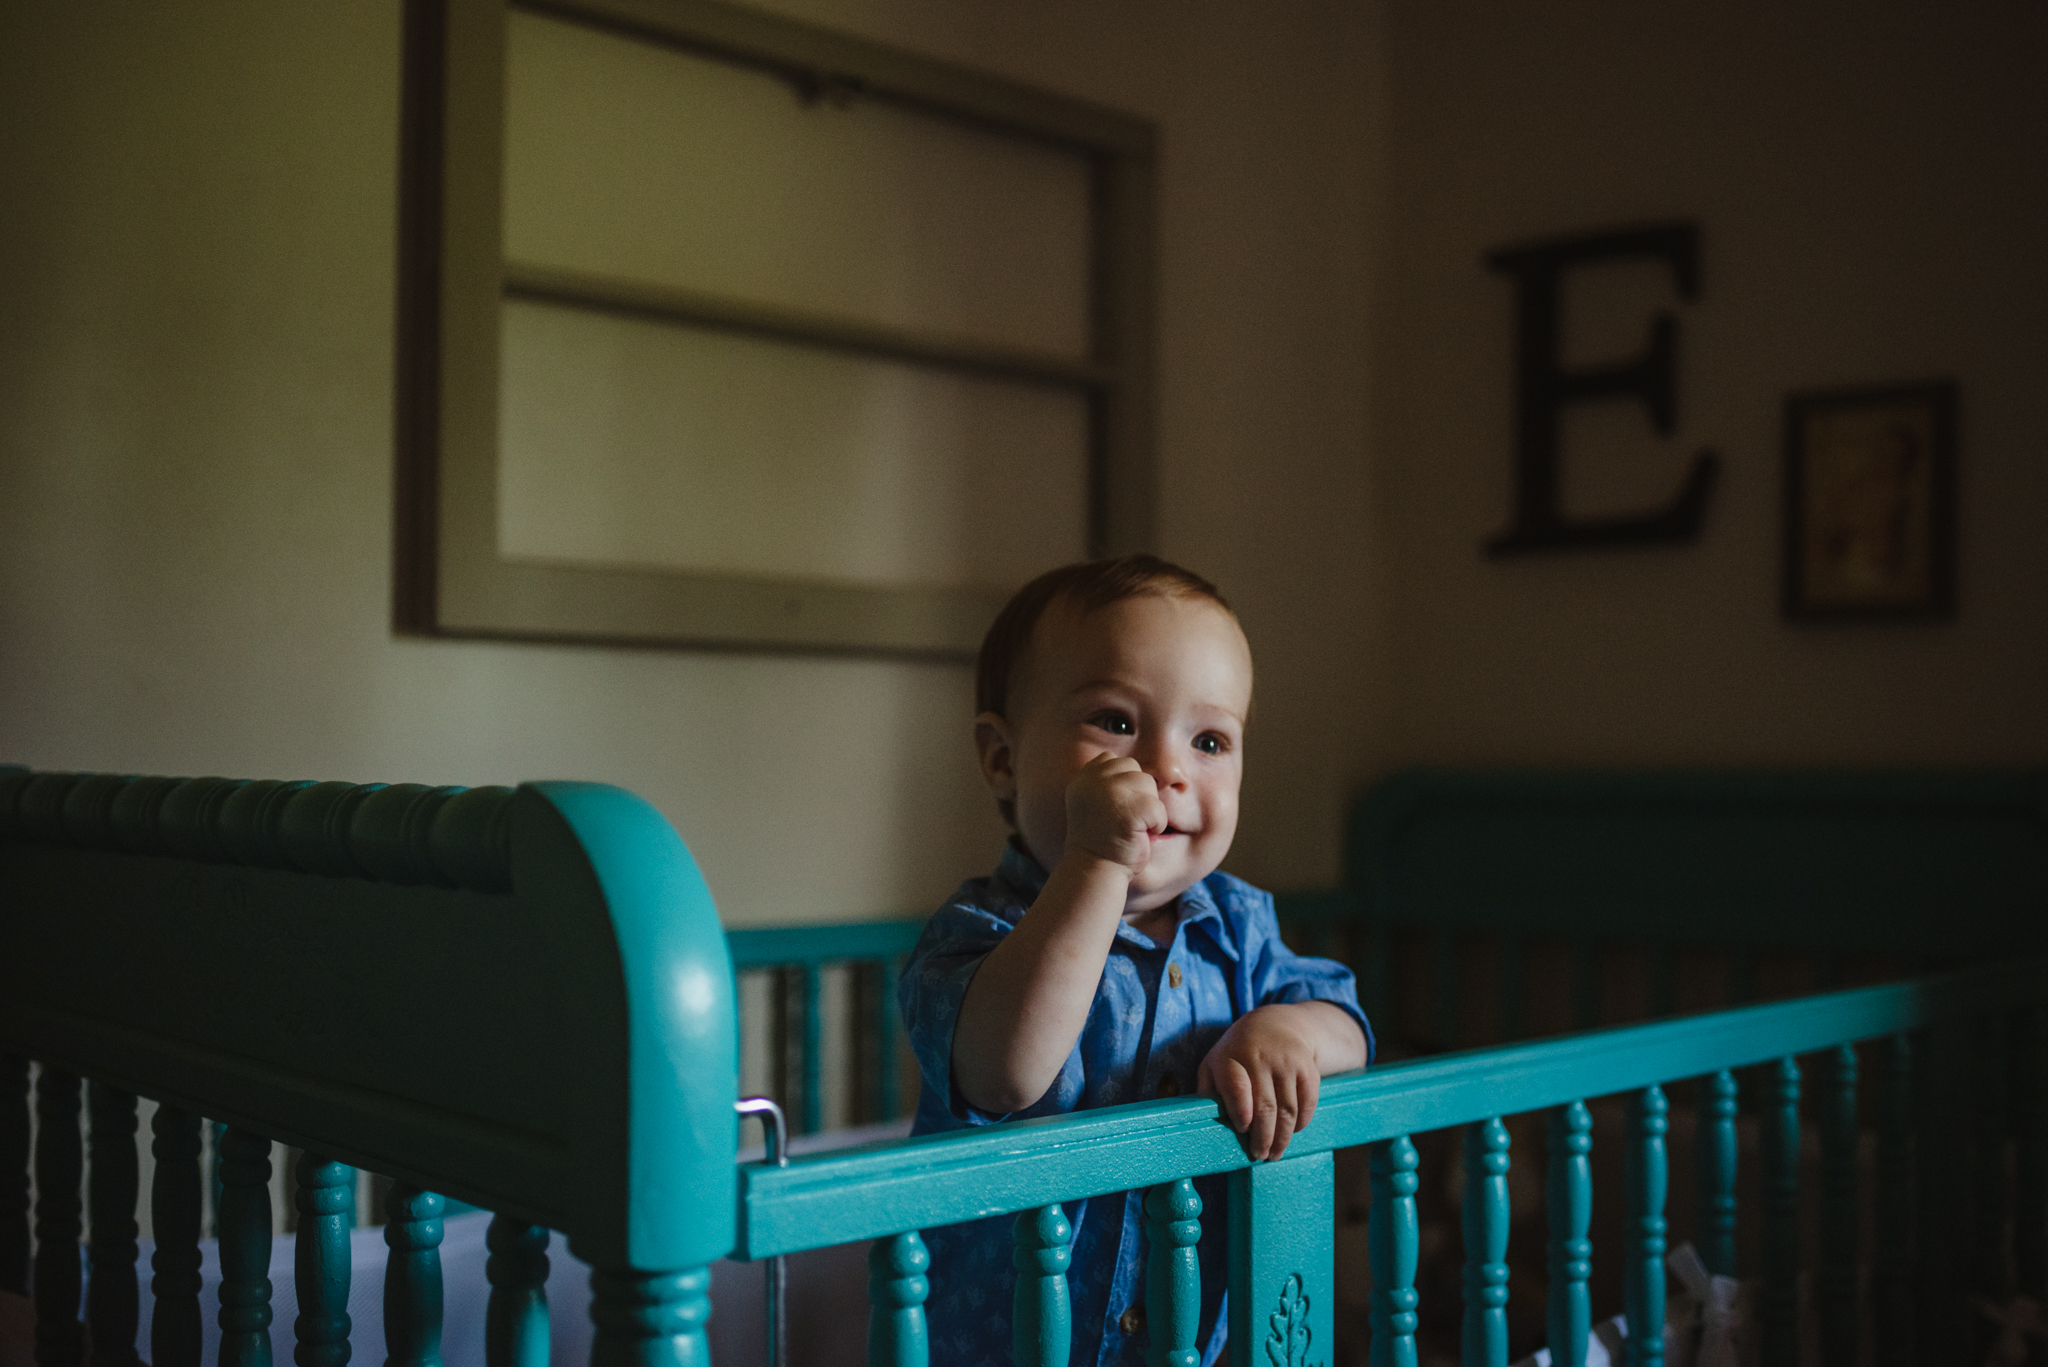 The baby stands in his crib during their lifestyle session at home in Wake Forest with Rose Trail Images.